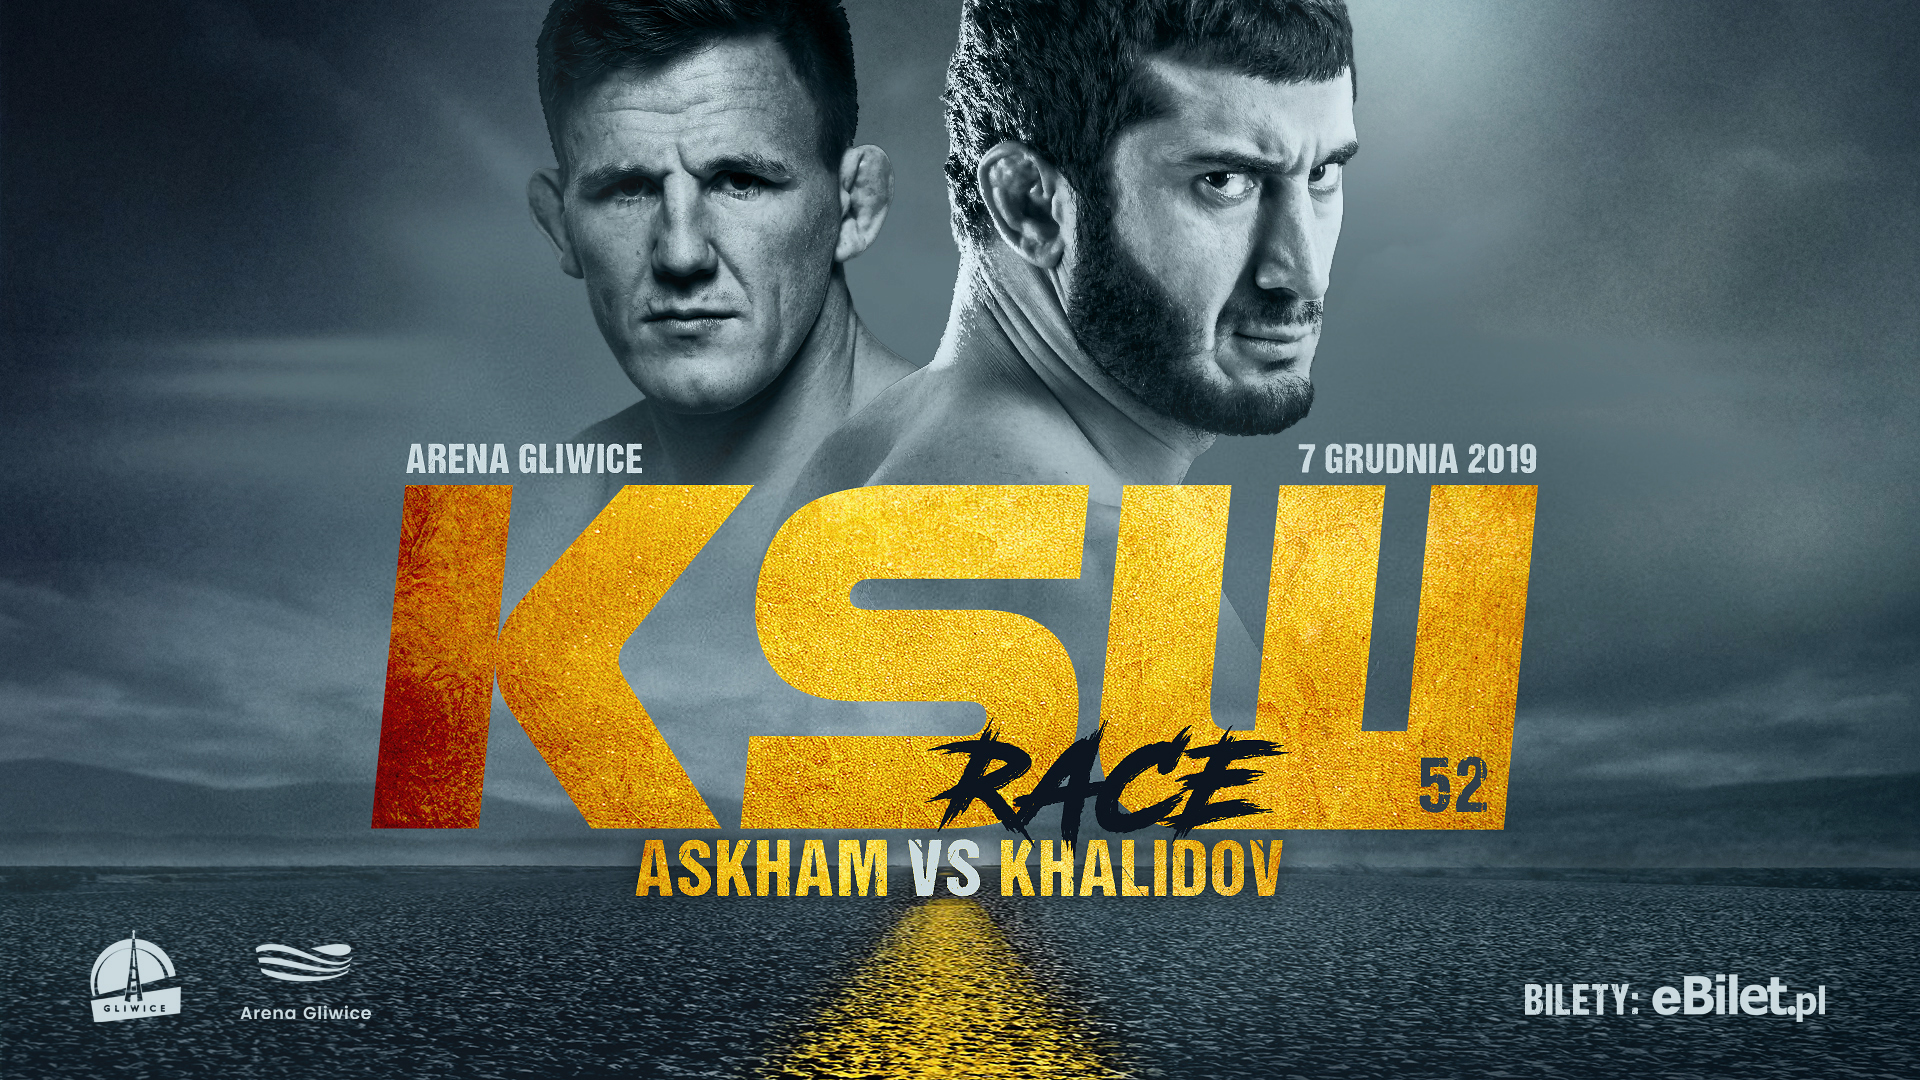 KSW 52: Khalidov vs. Askham & Olympic Medal Winners Collide - Olympic Winners